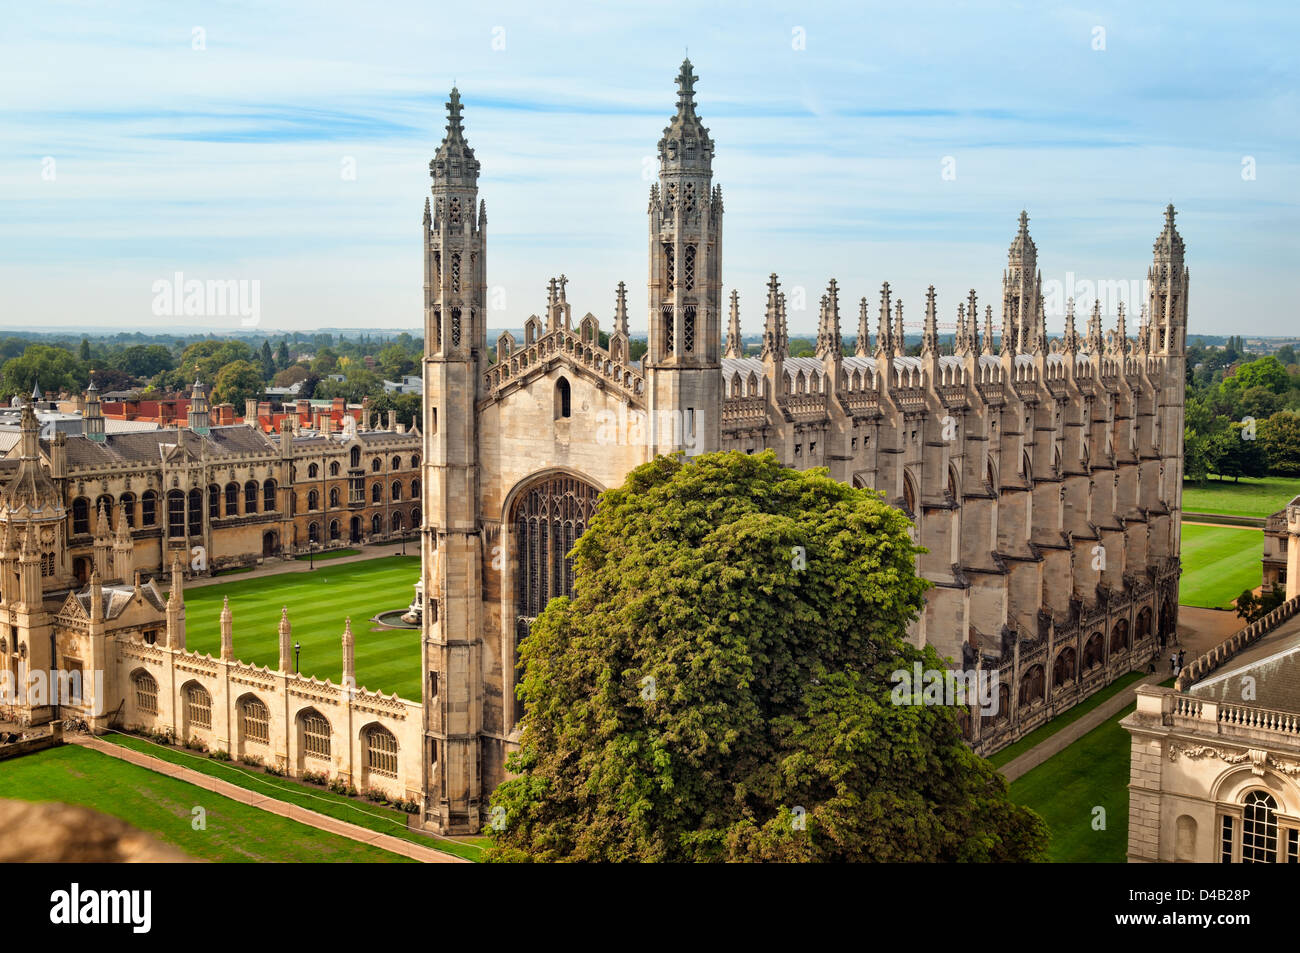 Ariel view of Kings College, Cambridge. - Stock Image